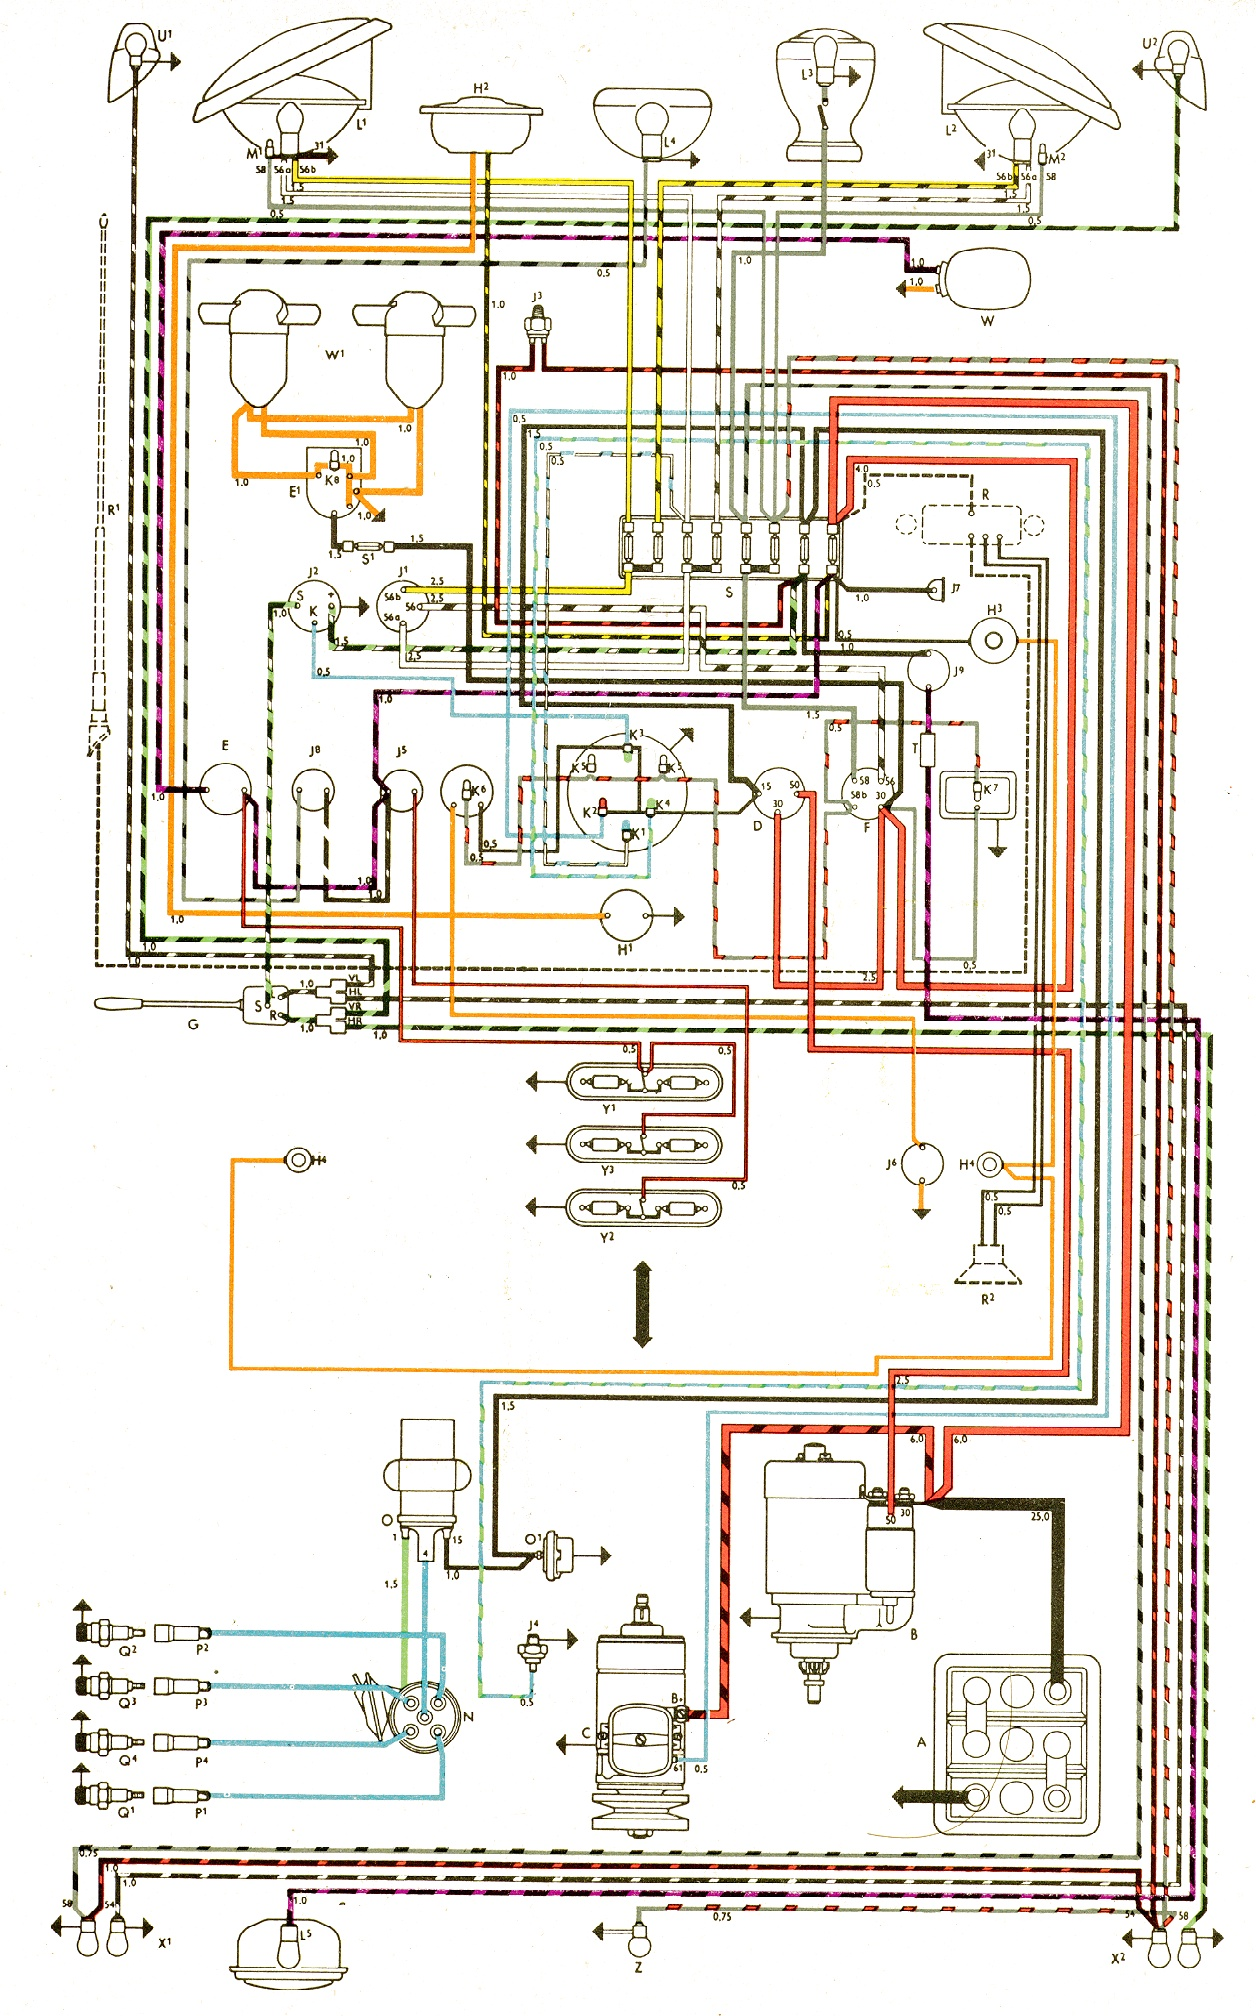 76 vw bus wiring diagram free image wiring diagram engine wire rh linxglobal co VW Bus Engine Diagram VW Bus Engine Diagram